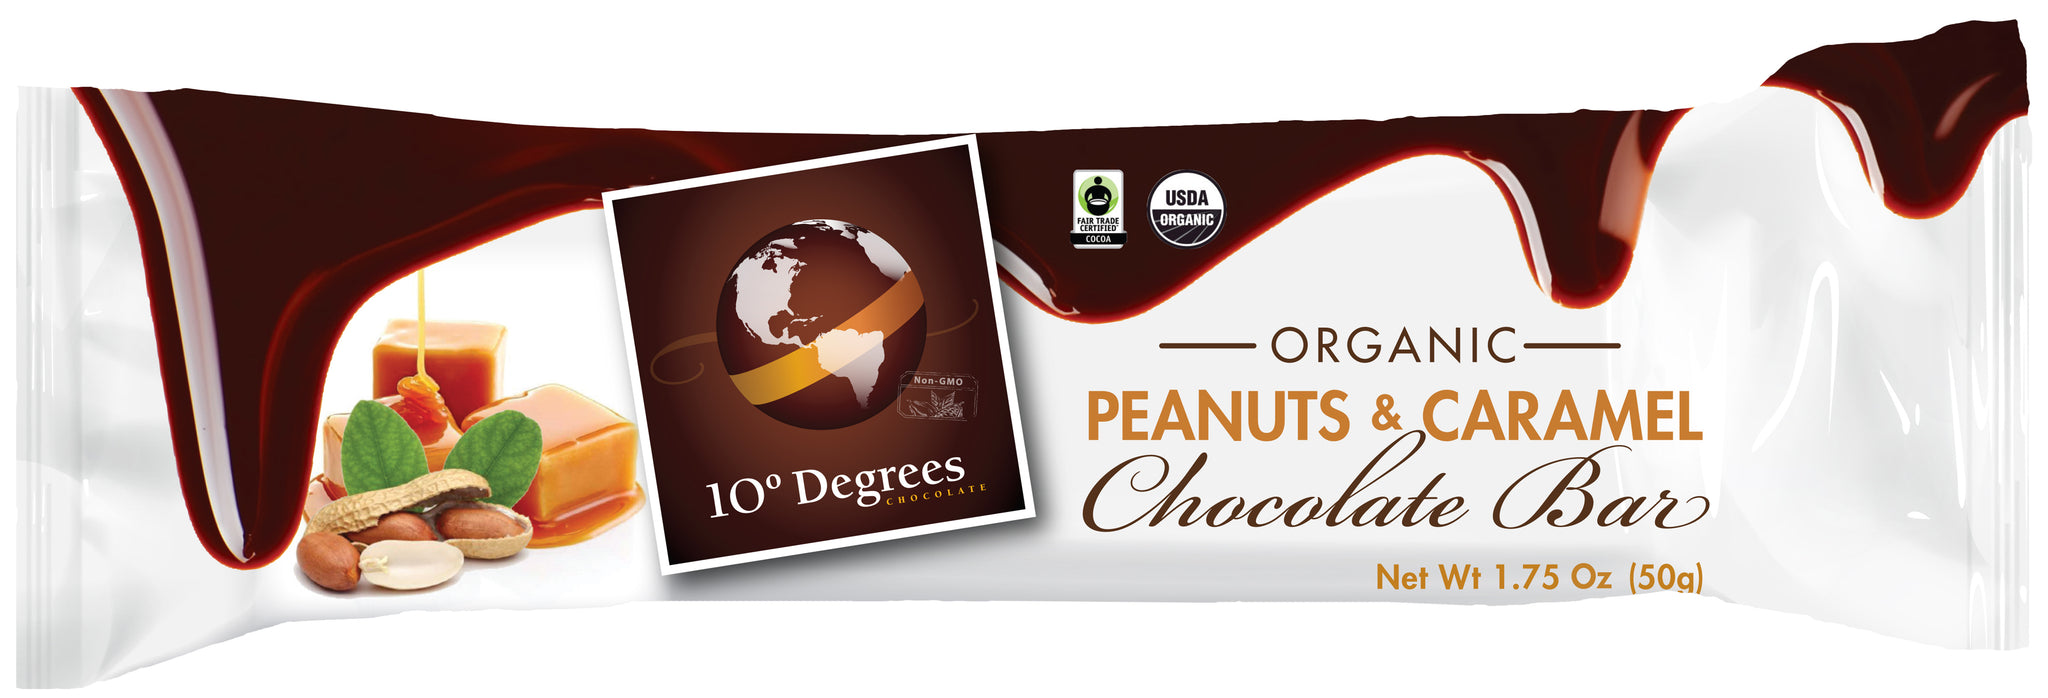 Organic Dark Chocolate Peanuts & Caramel Bar